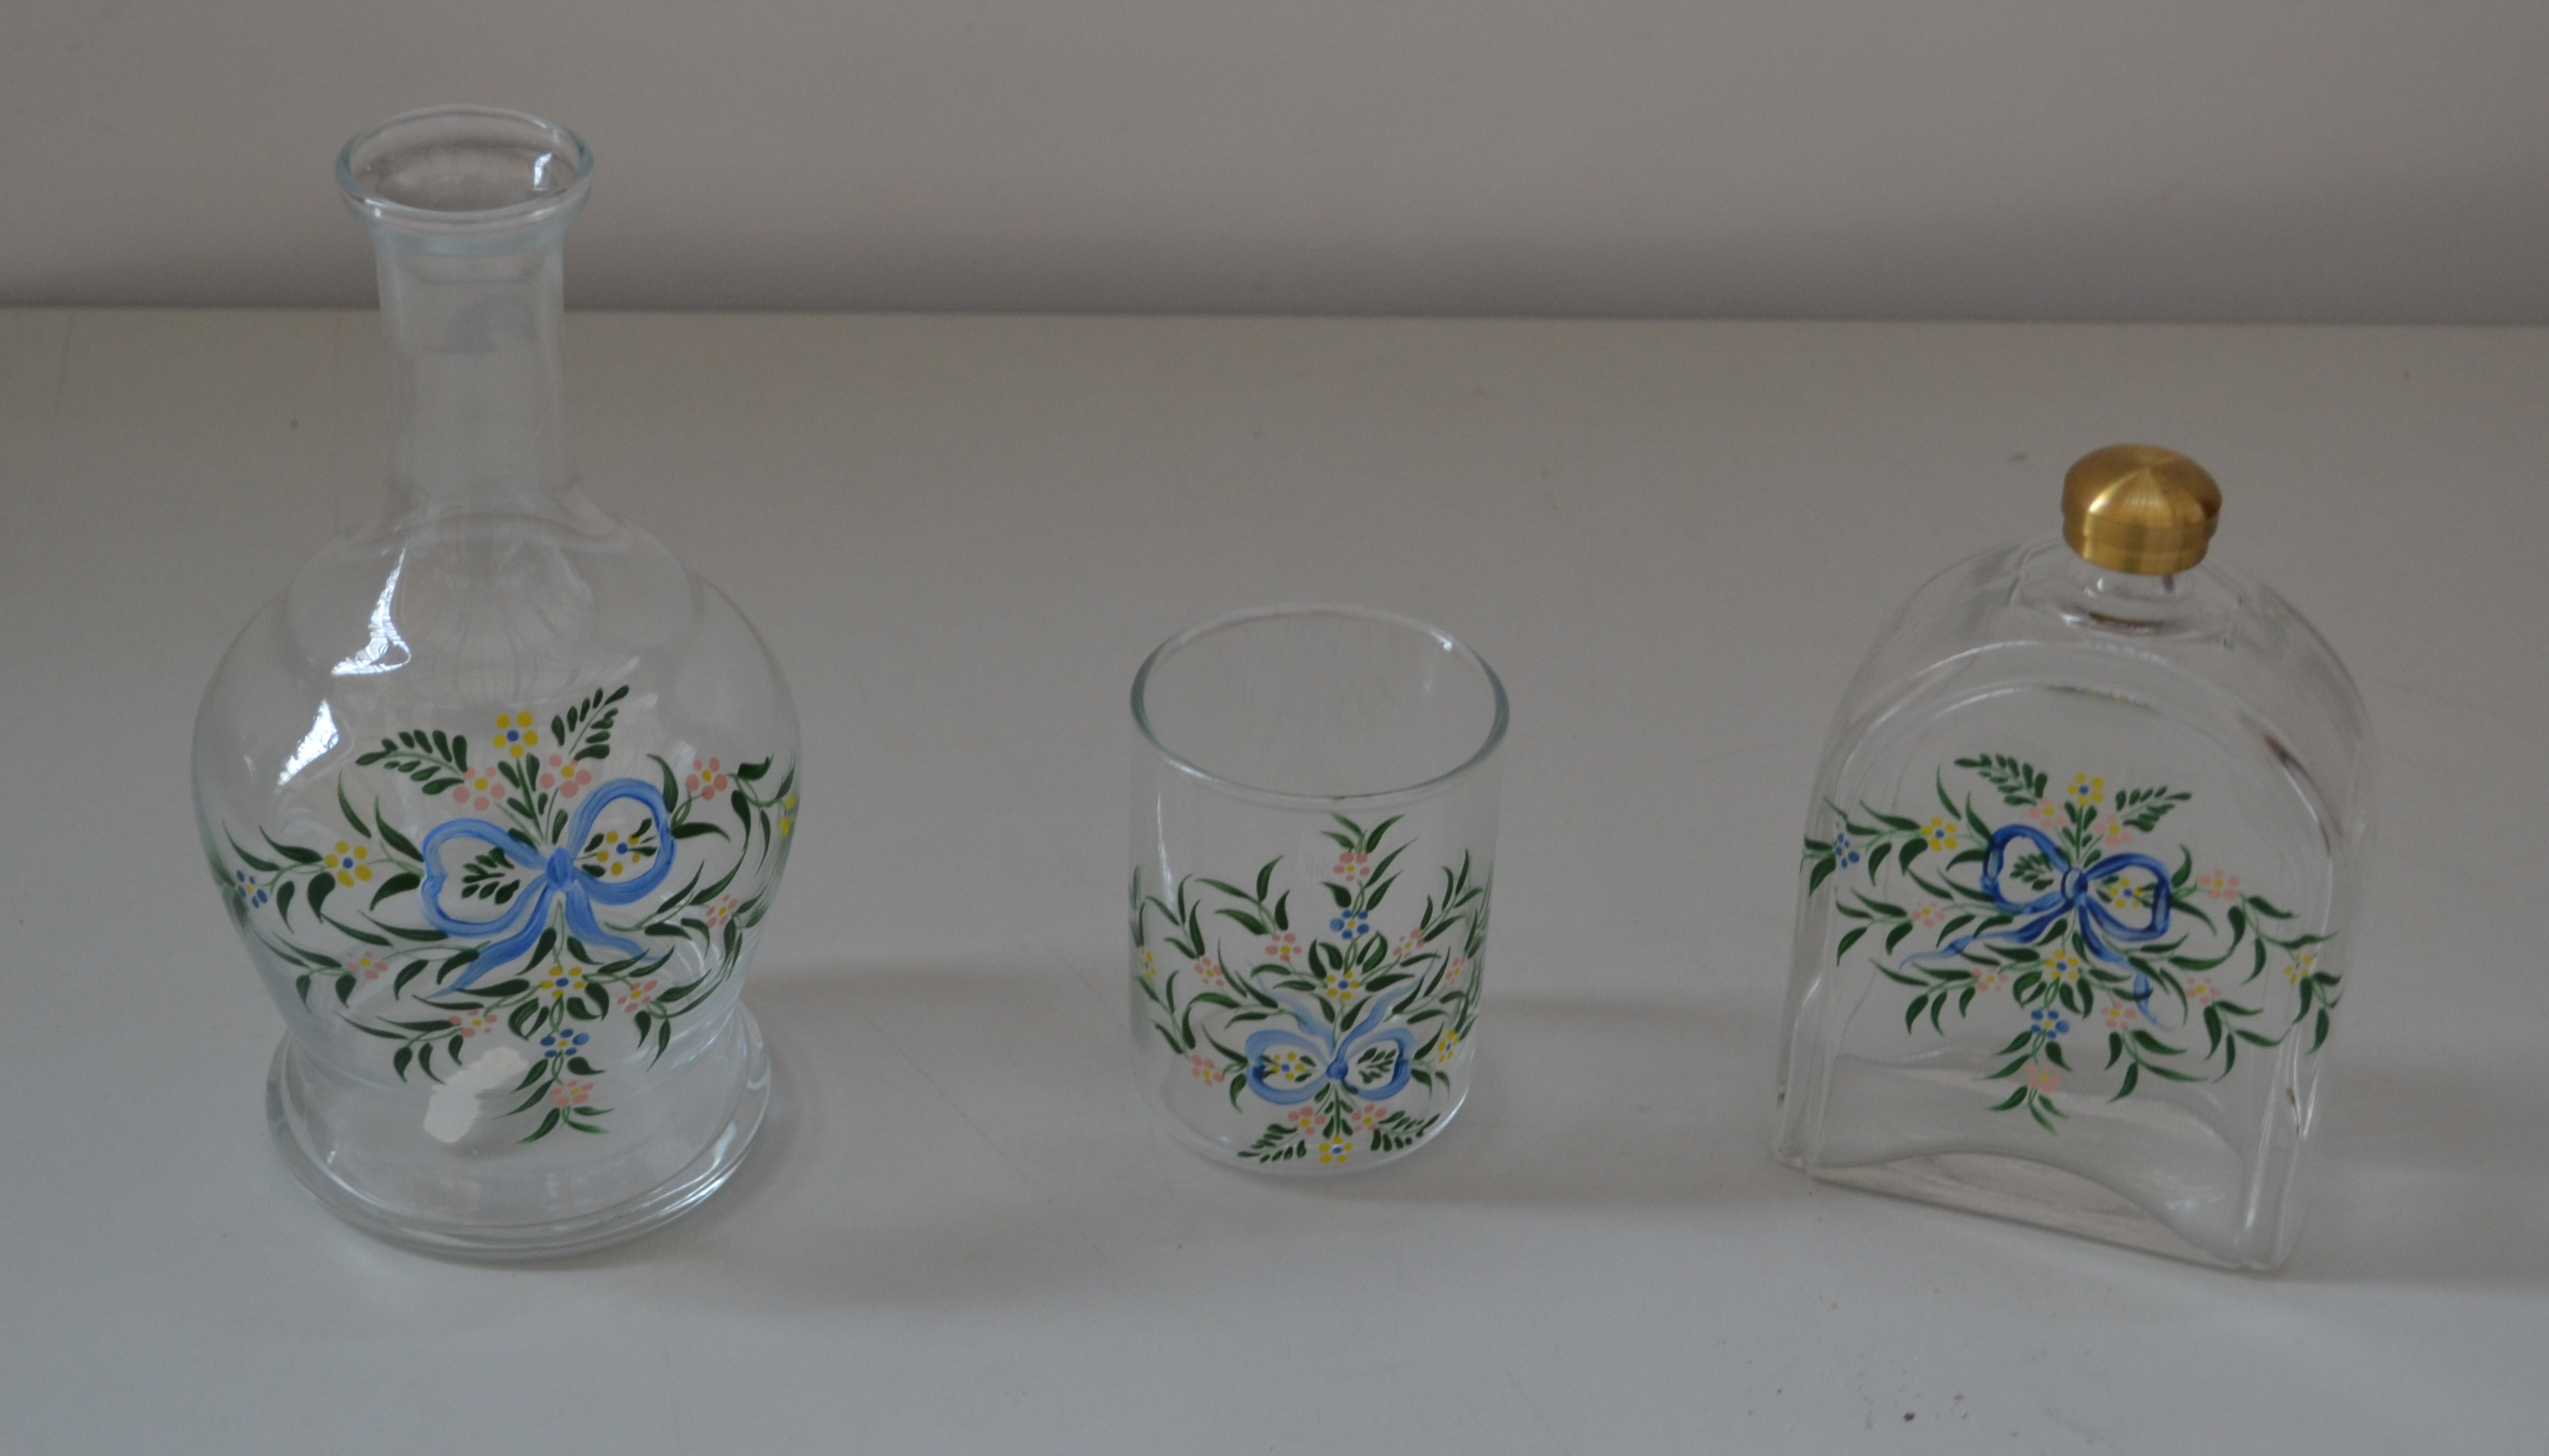 Lot 7358 - 1 x Glass Drinking Set With Flower Pattern - Ref J2165 - CL314